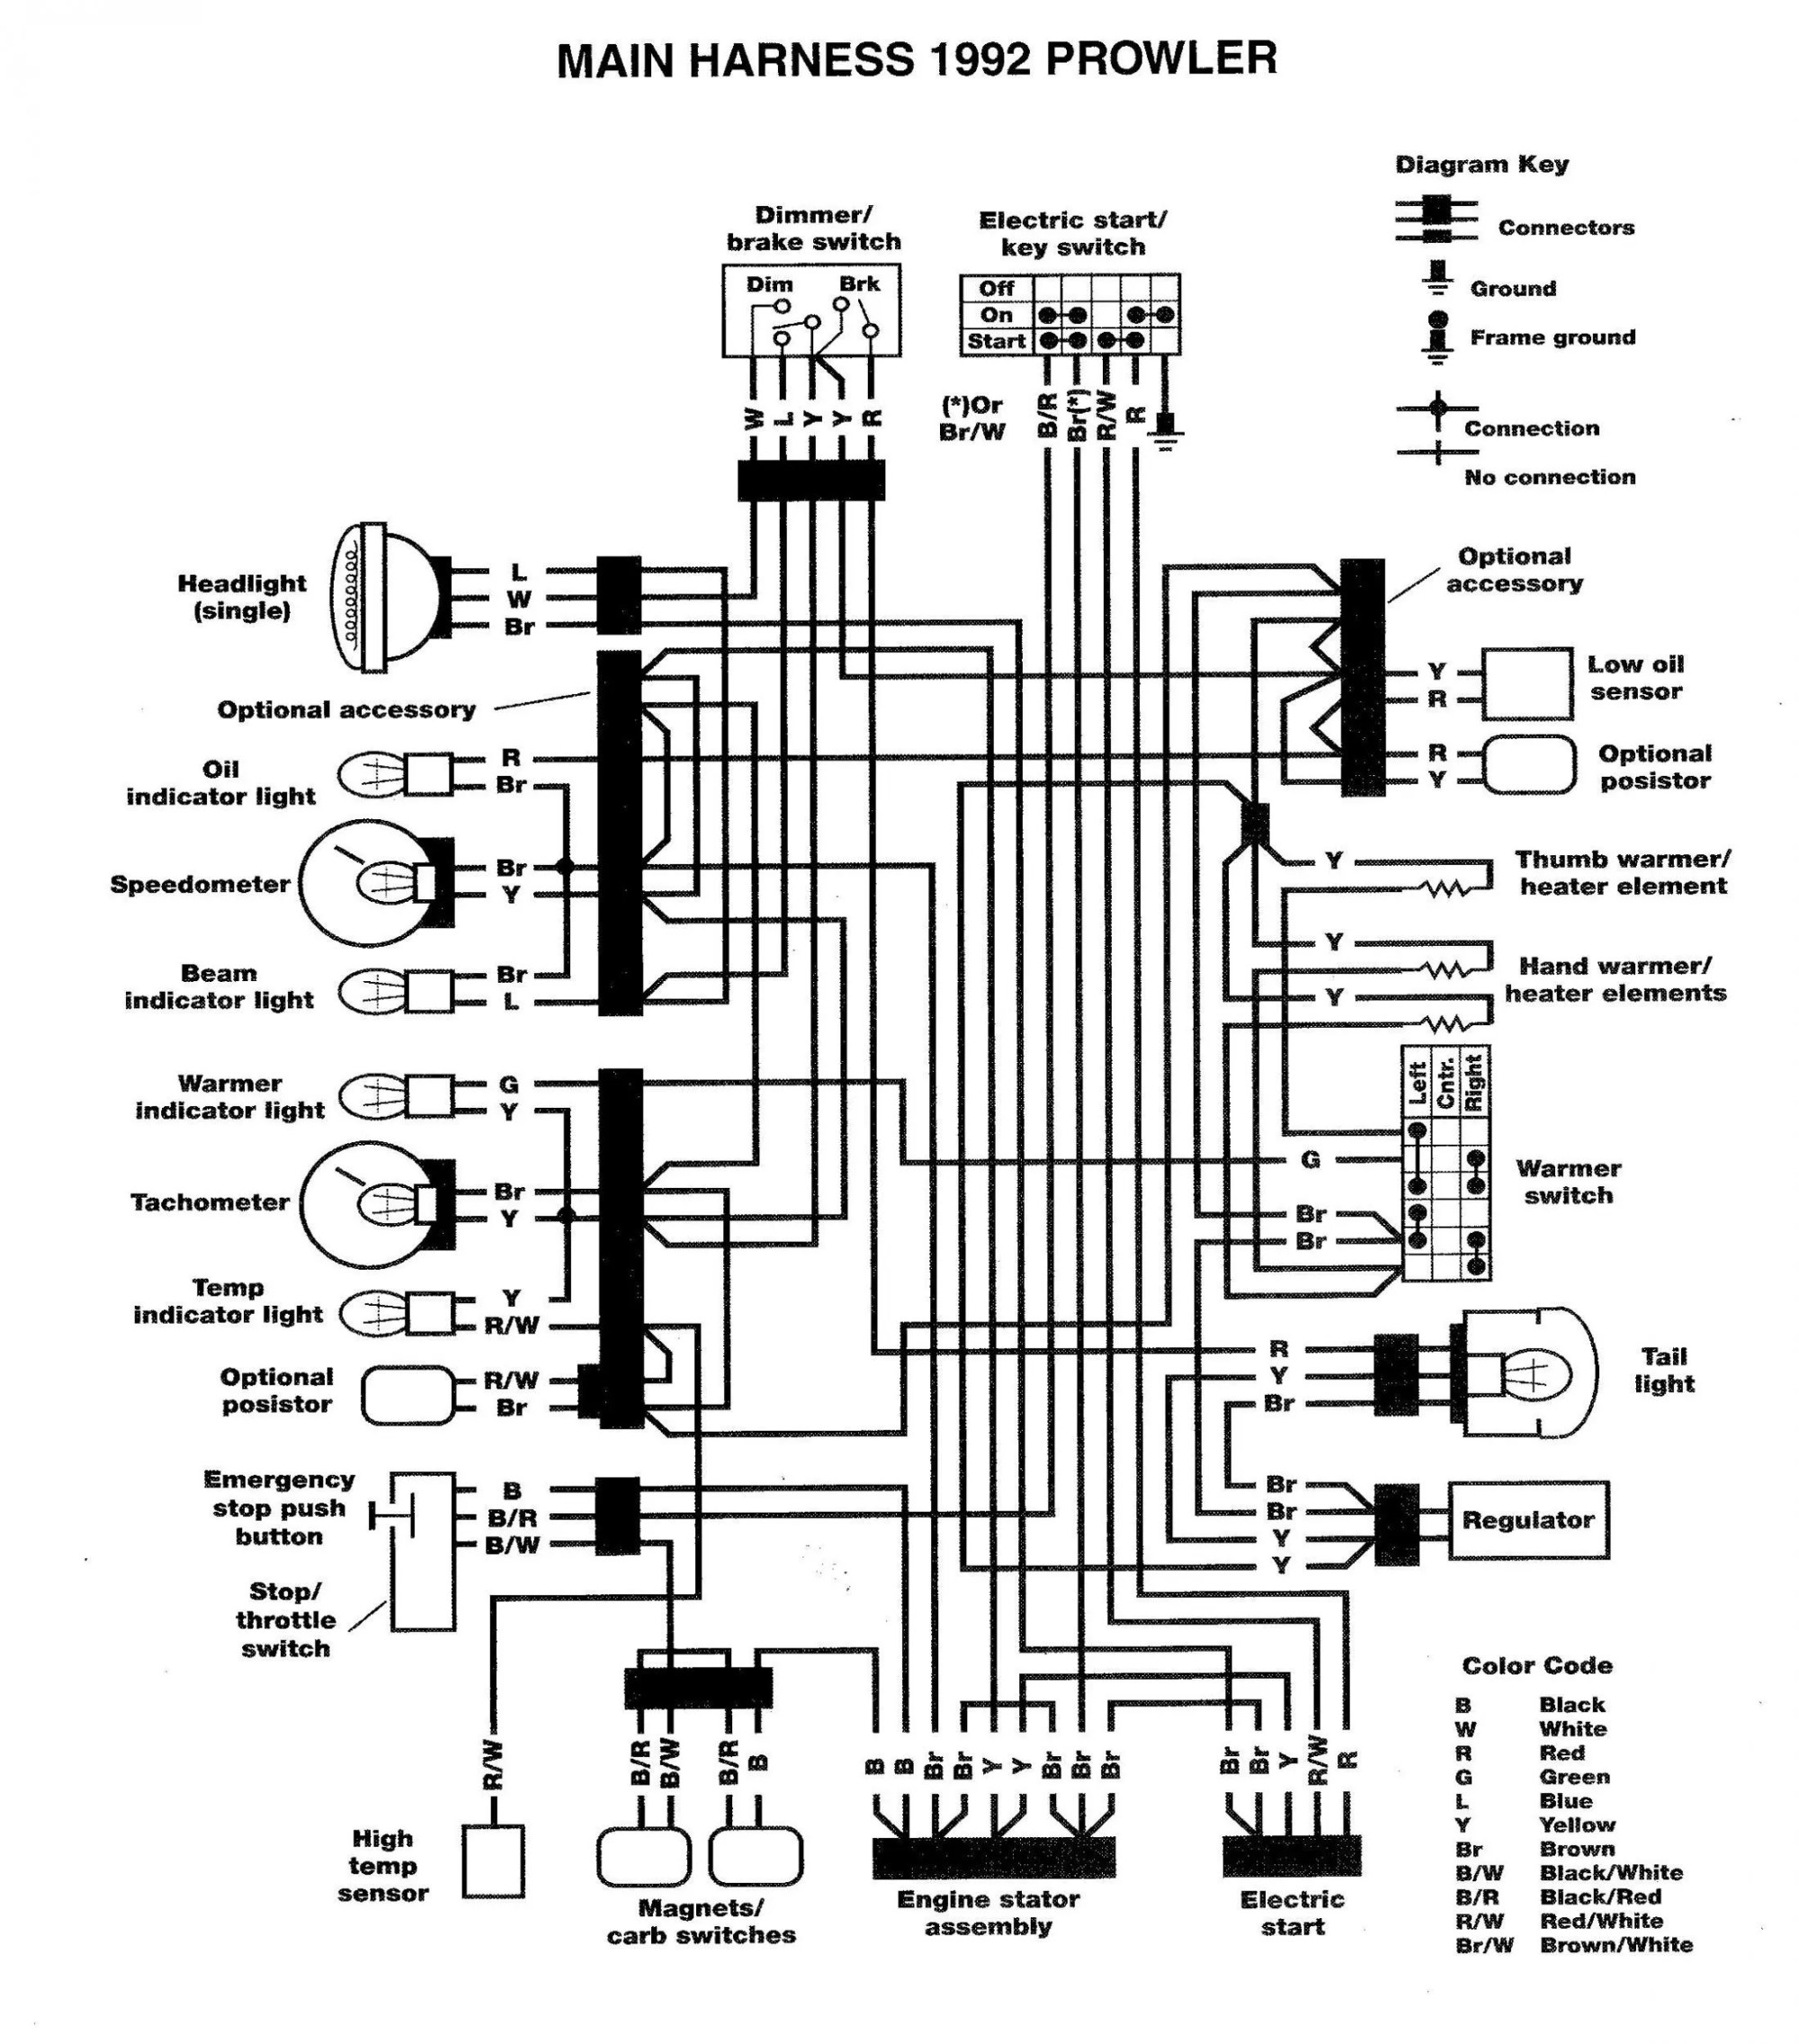 hight resolution of 1992 polaris wiring diagram wiring diagram 1992 polaris 250 wiring diagram 1992 polaris wiring diagram